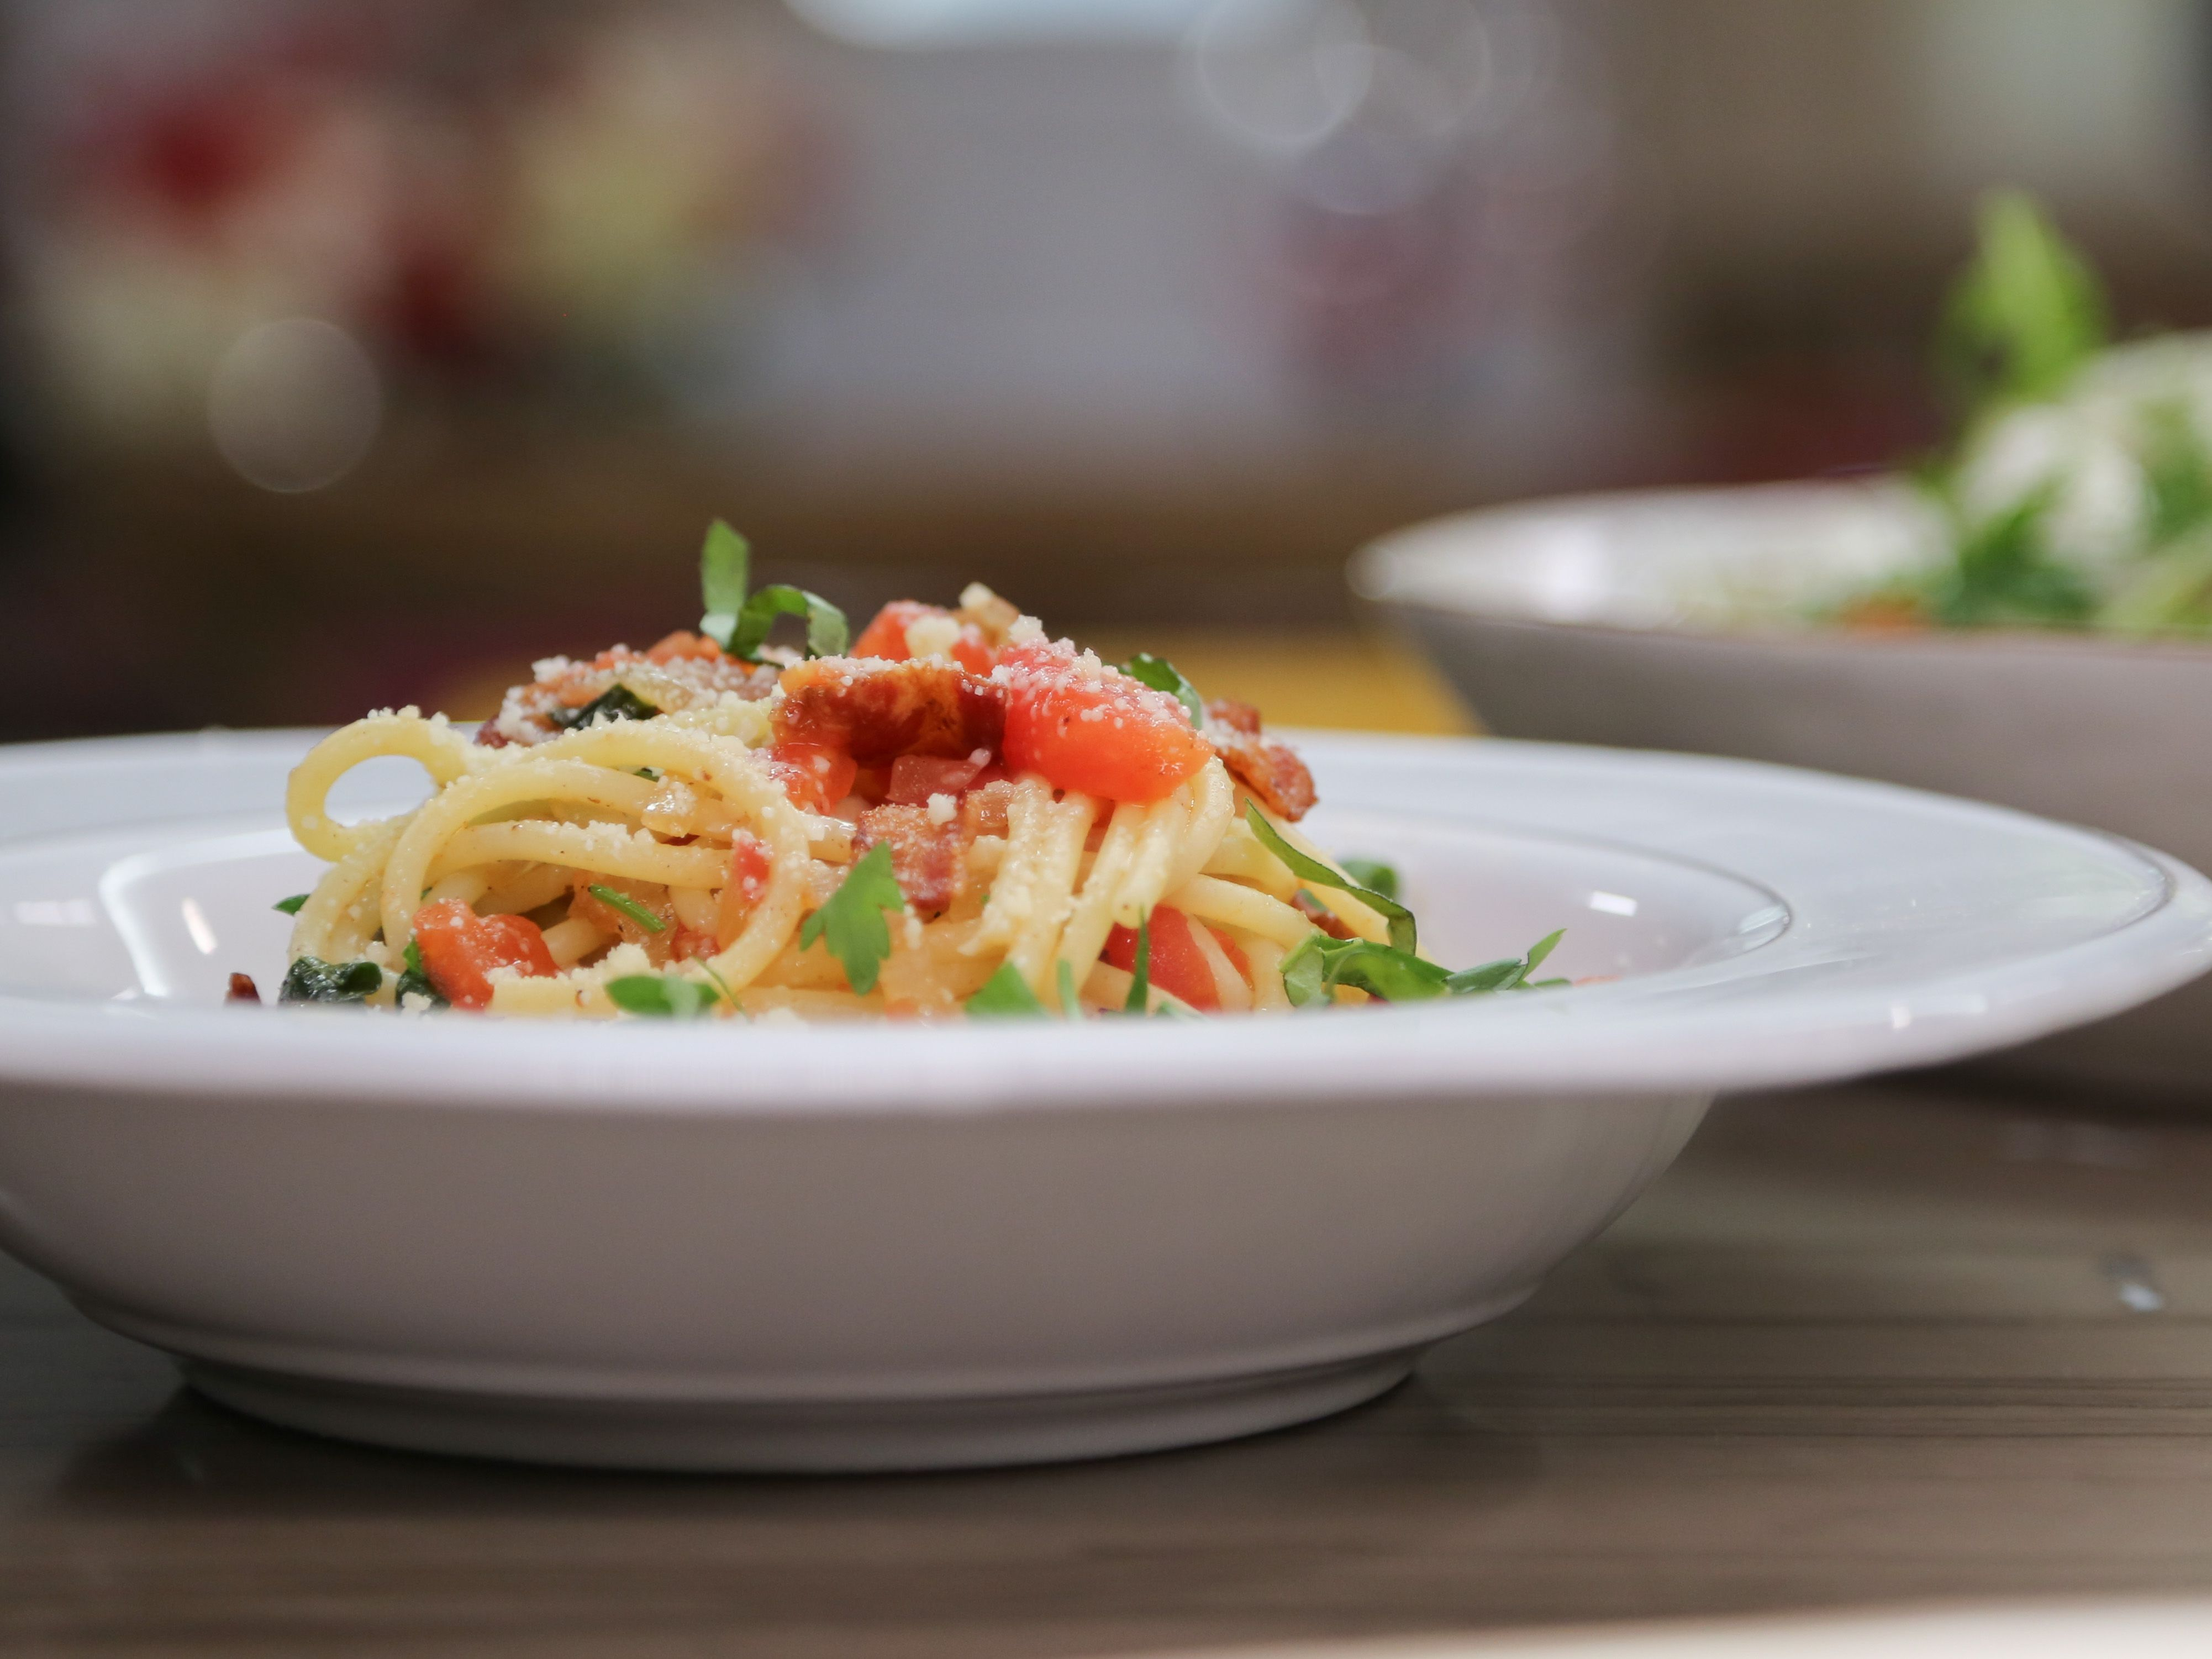 Pasta with bacon and tomatoes recipe valerie bertinelli pasta pasta with bacon and tomatoes recipe from valerie bertinelli via food network forumfinder Choice Image